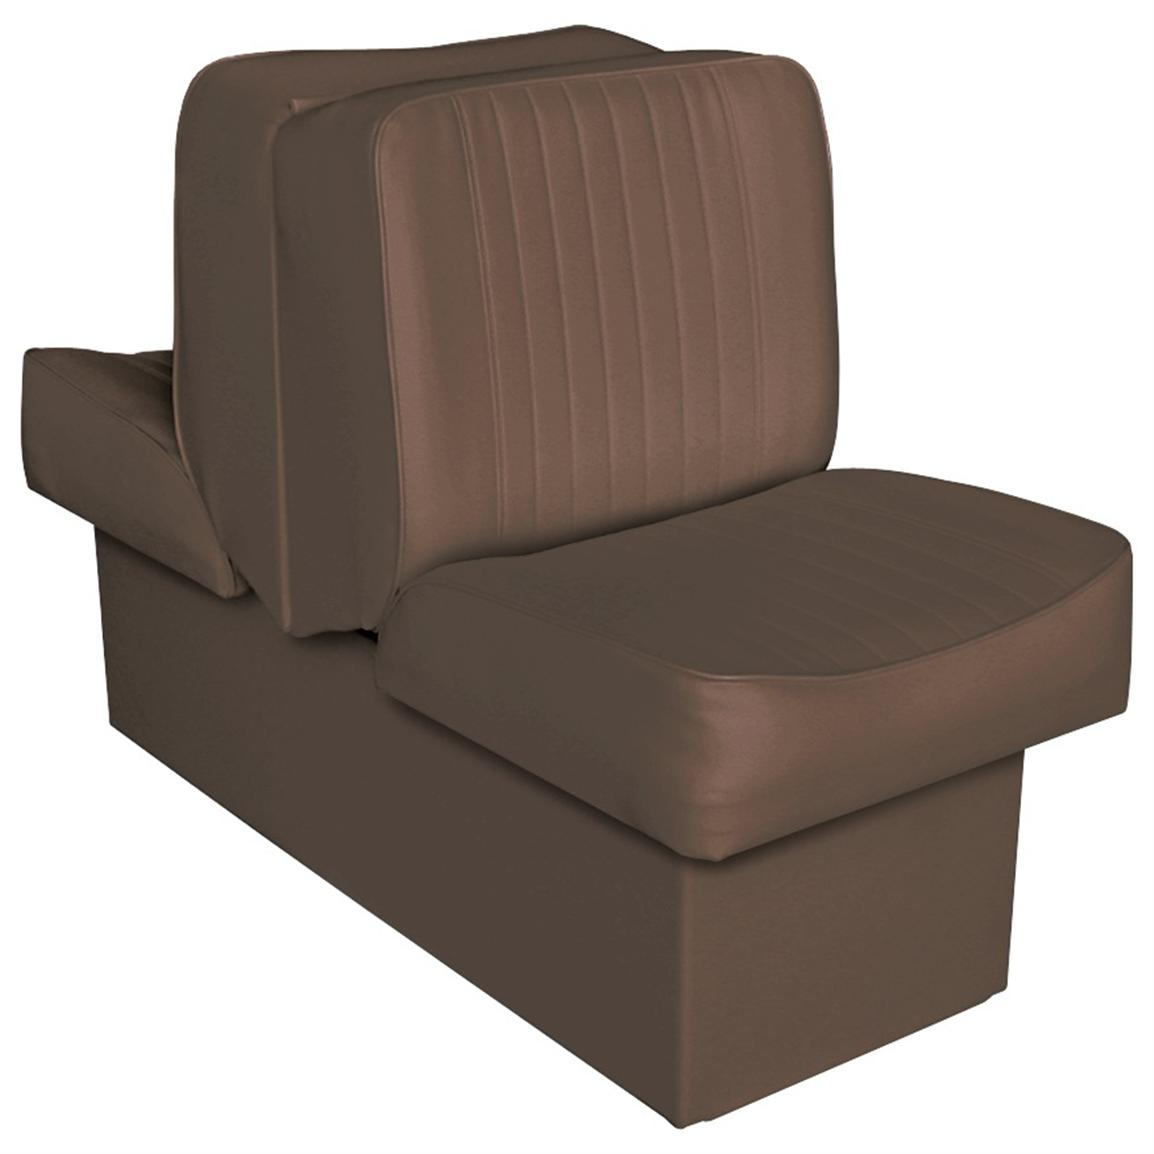 Wise Deluxe Boat Lounge Seat, Brown